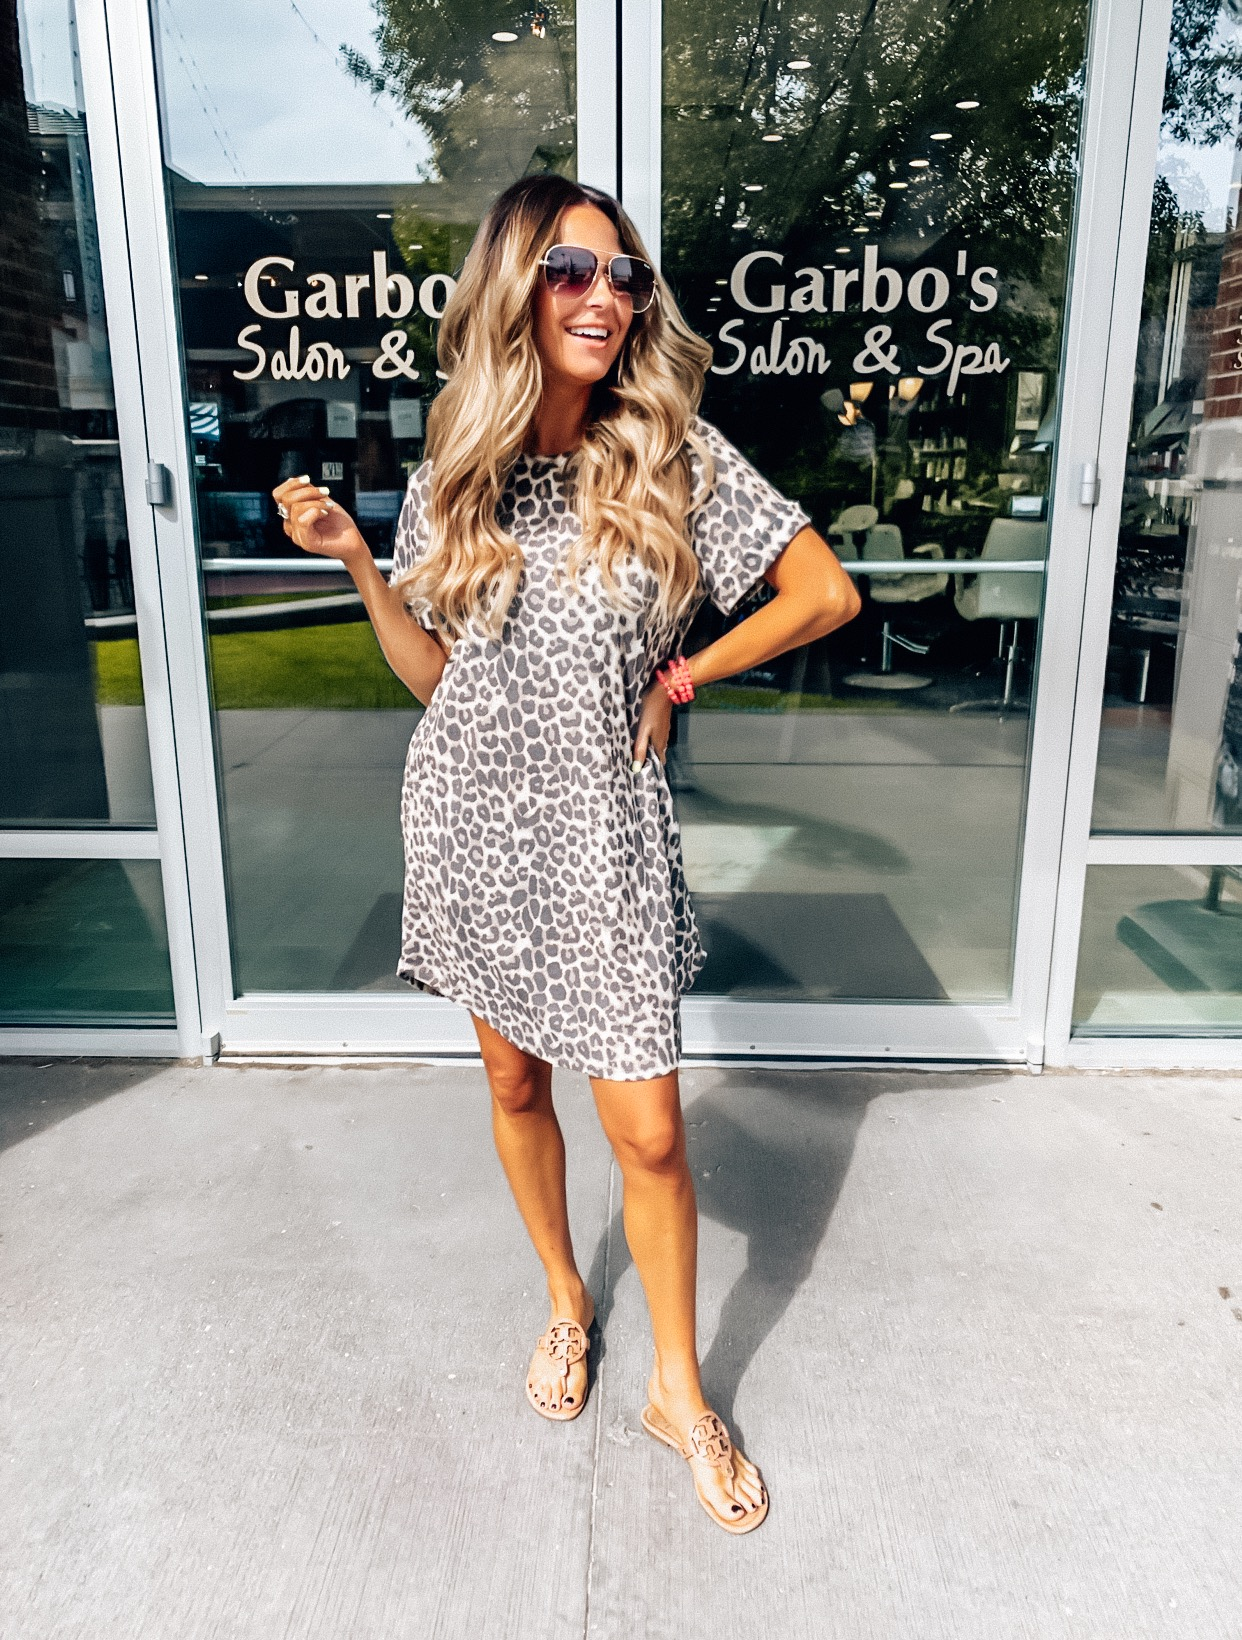 hand-tied extensions-garbo's-garbo's Omaha-garbo's village pointe-before and after-hair goals-hair transformation-hair before and after-sabby style-omaha blogger-12